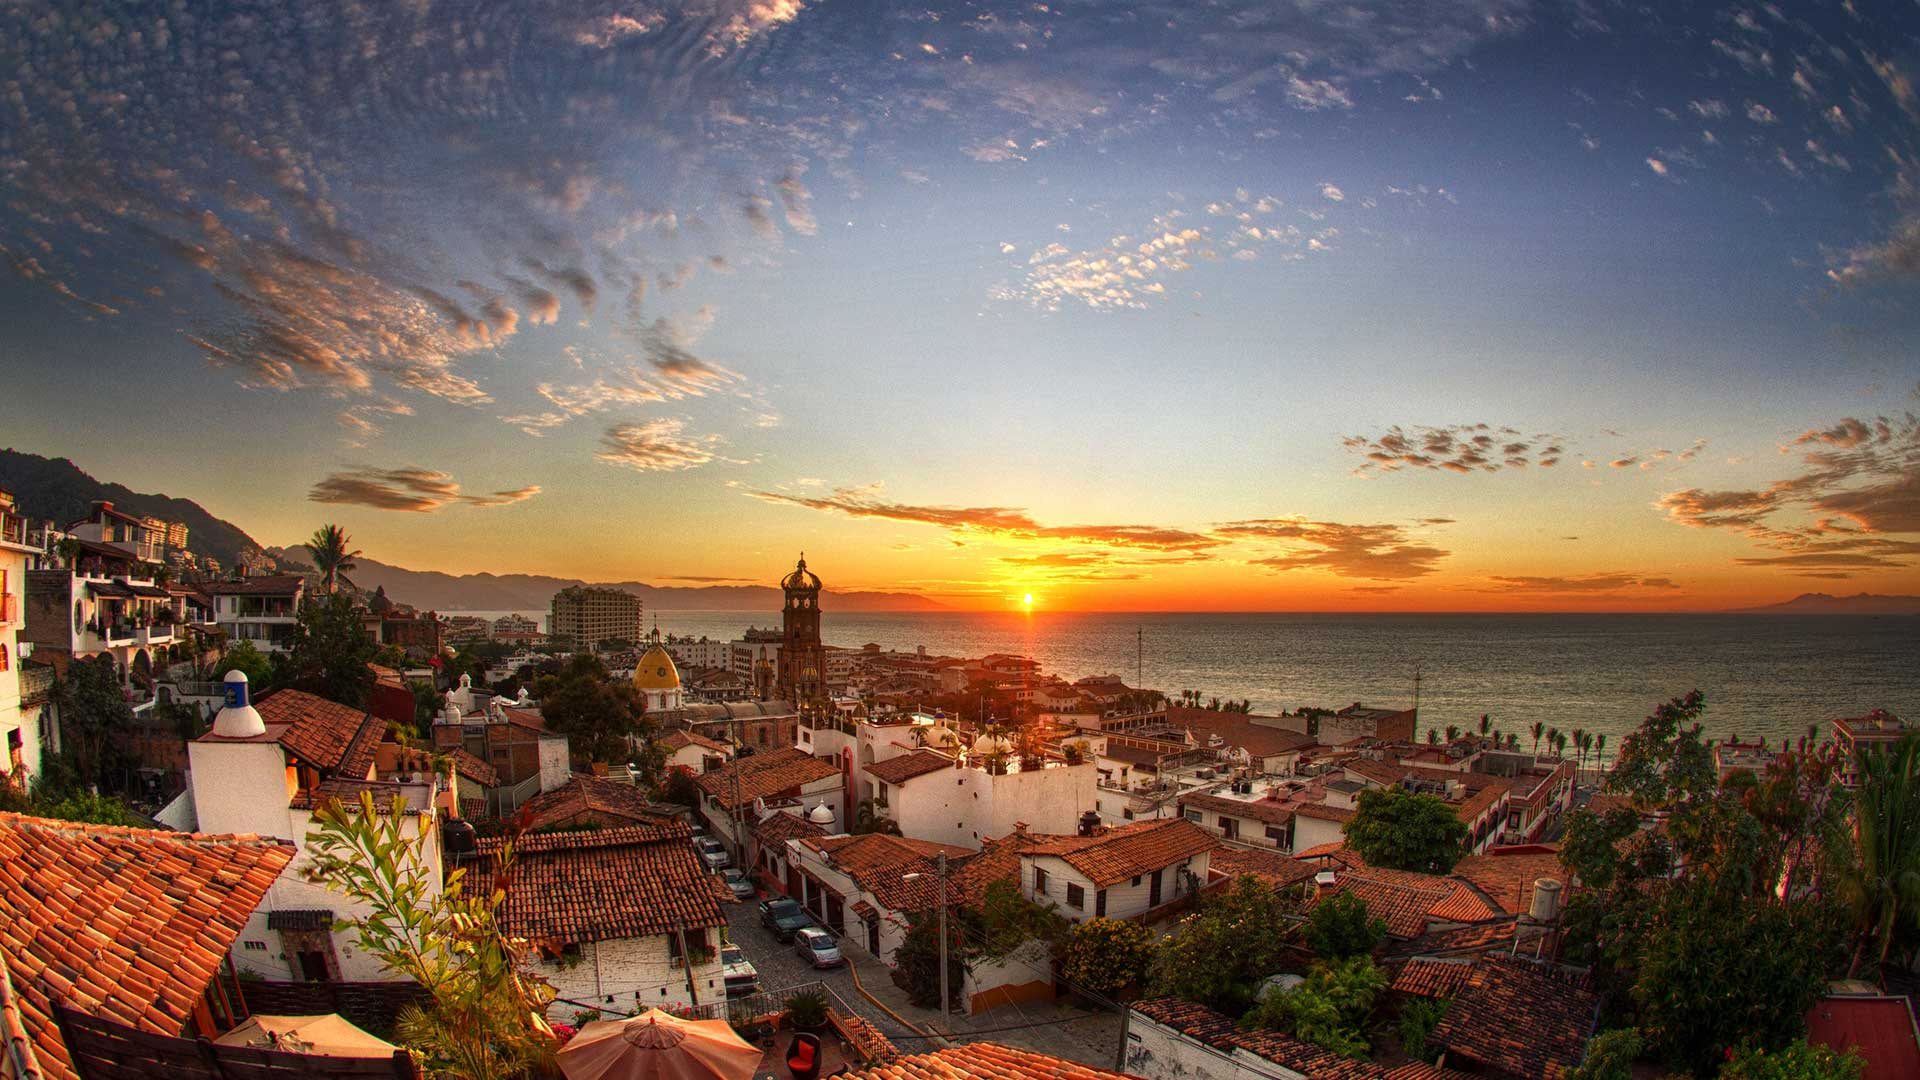 Puerto Vallarta Mexico City Wallpaper PNG Transparent best stock 1920x1080